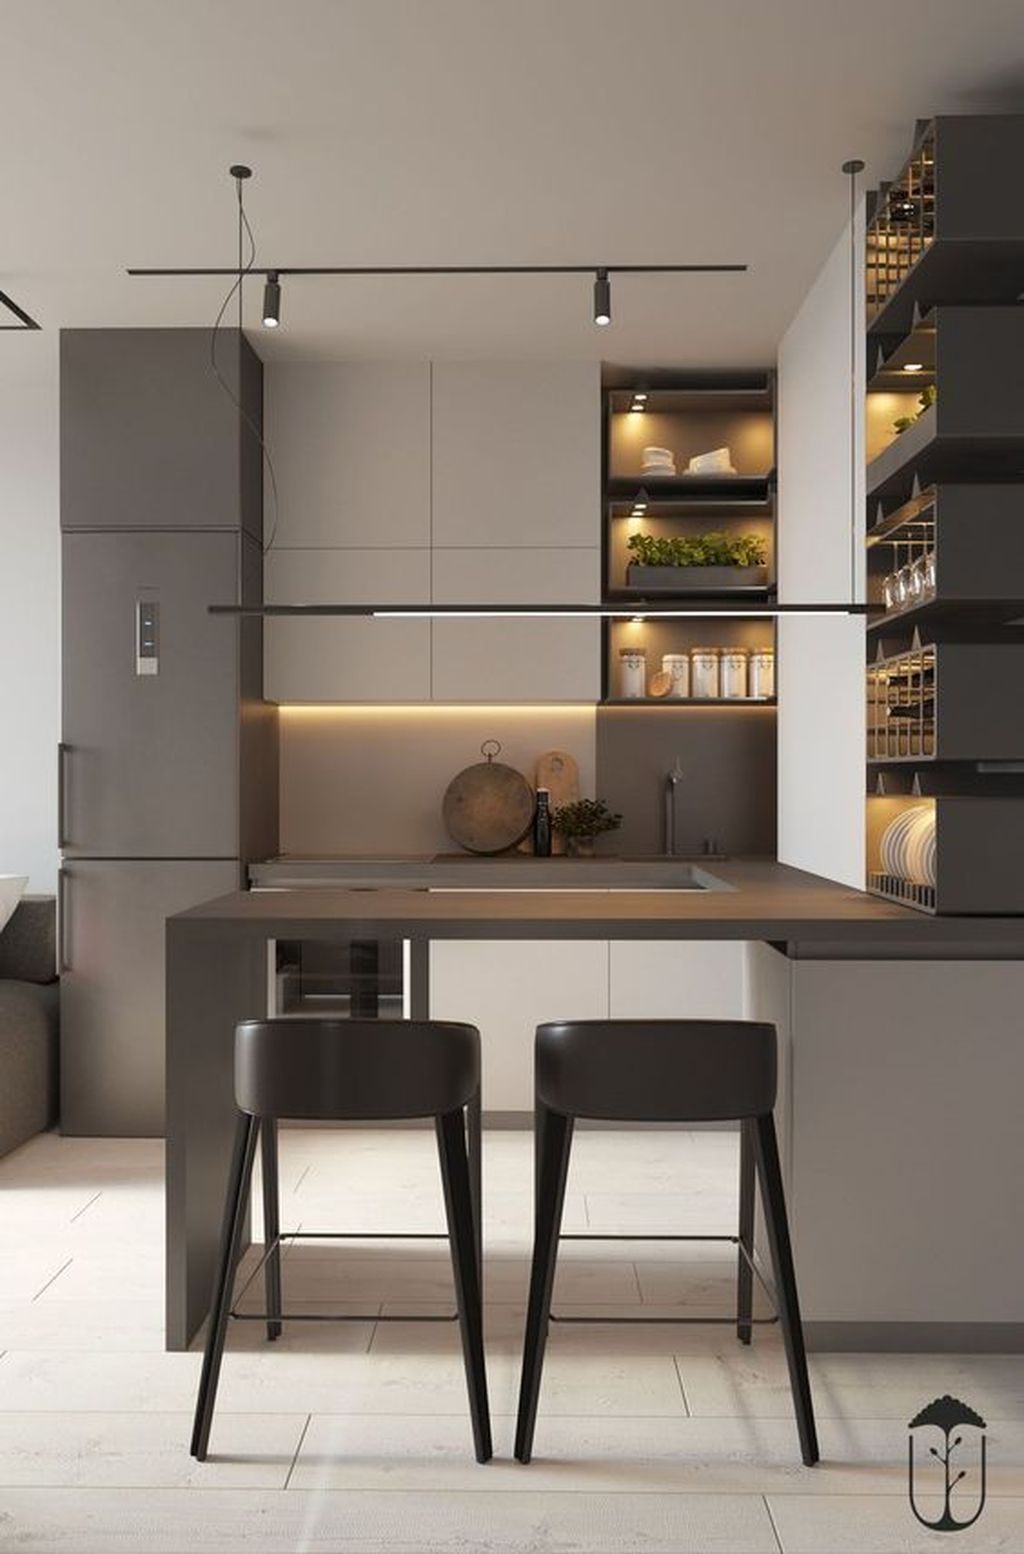 Impressive Kitchen Design Ideas You Can Try In Your Dream Home 05